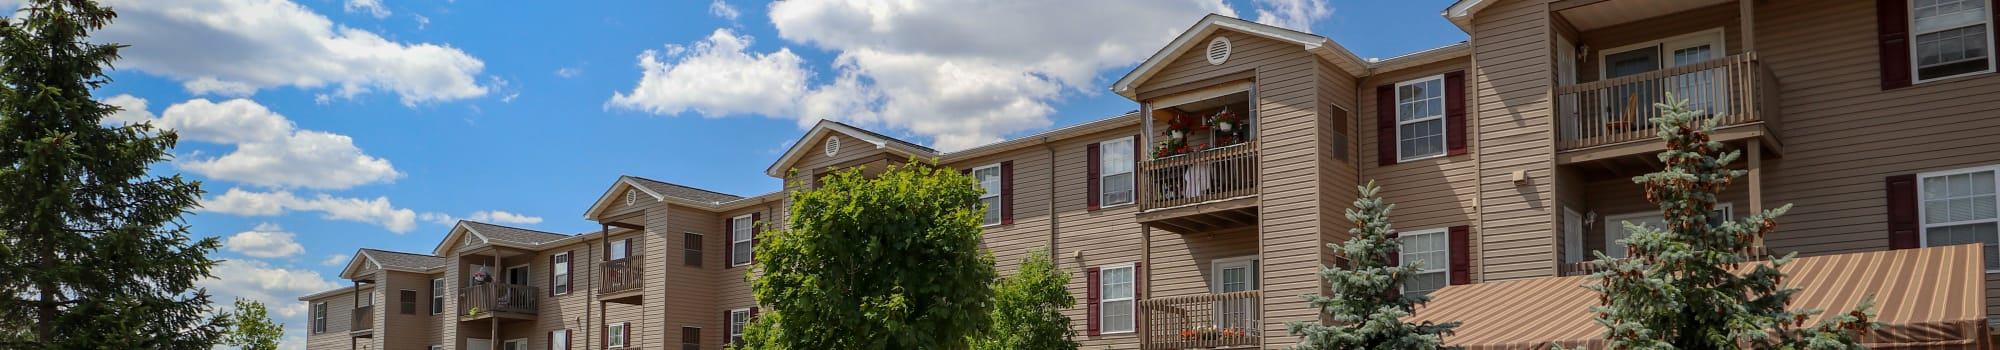 Apartments in Getzville, NY